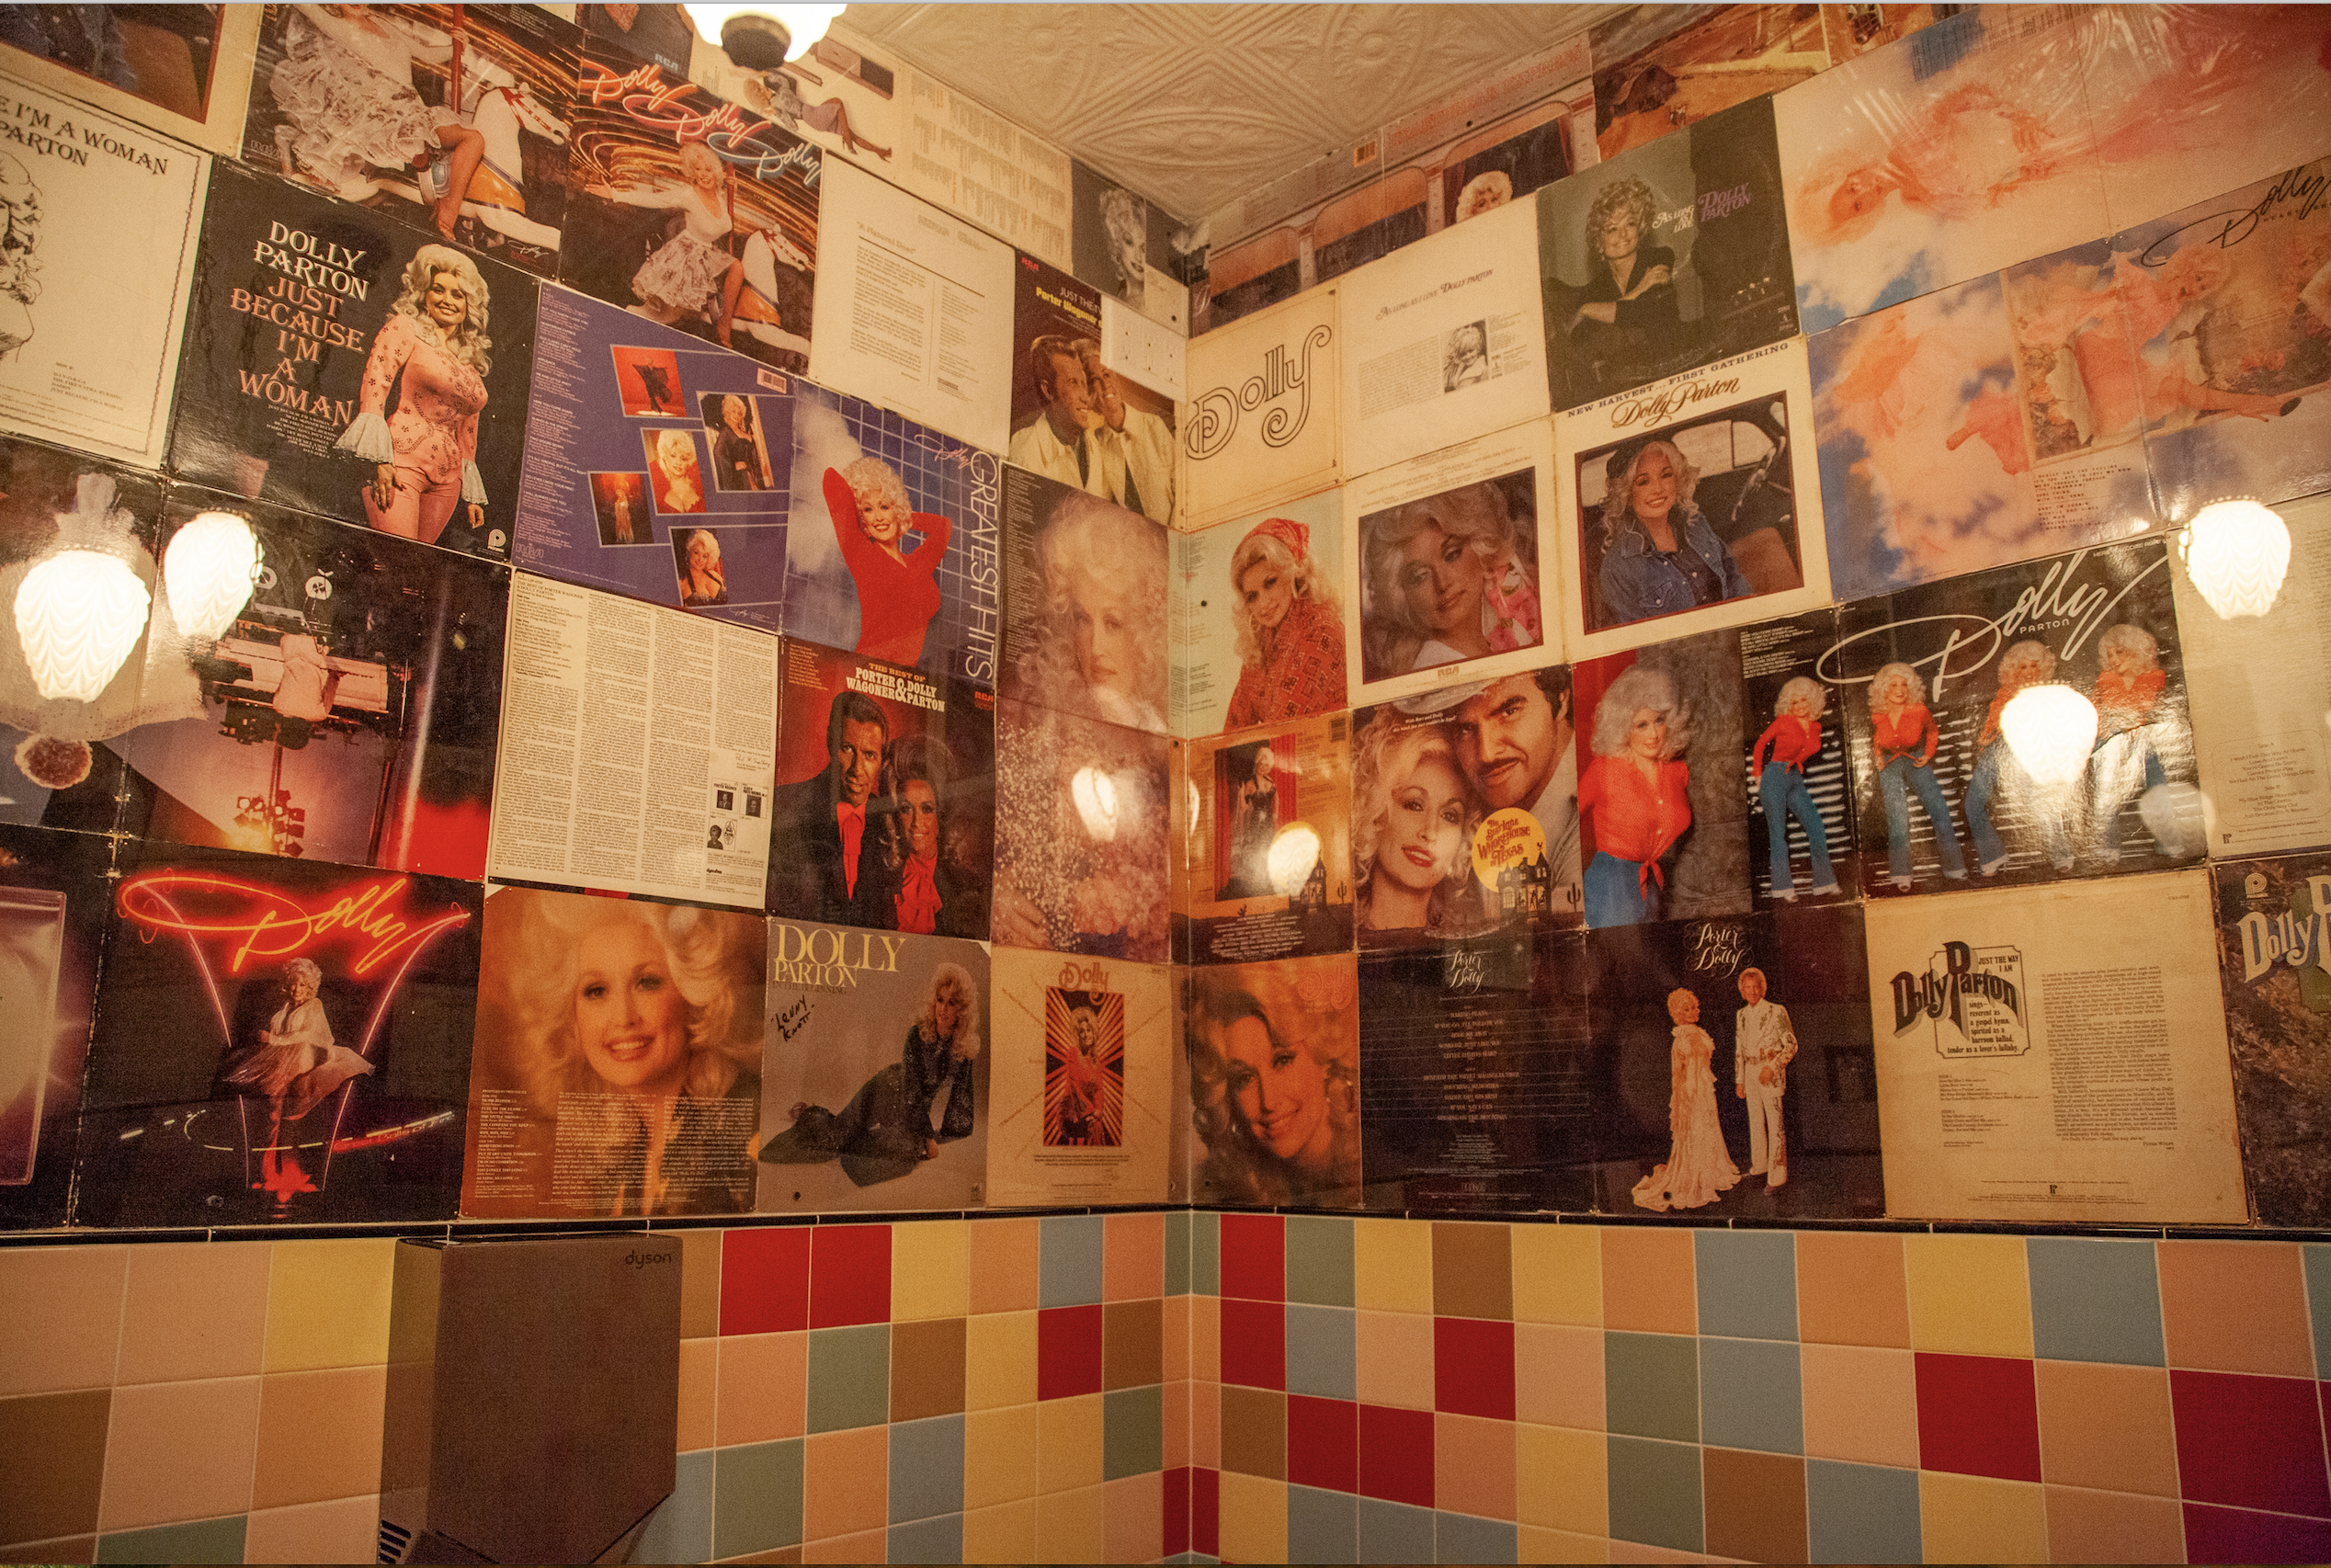 18 best bathrooms at restaurants and bars in NYC